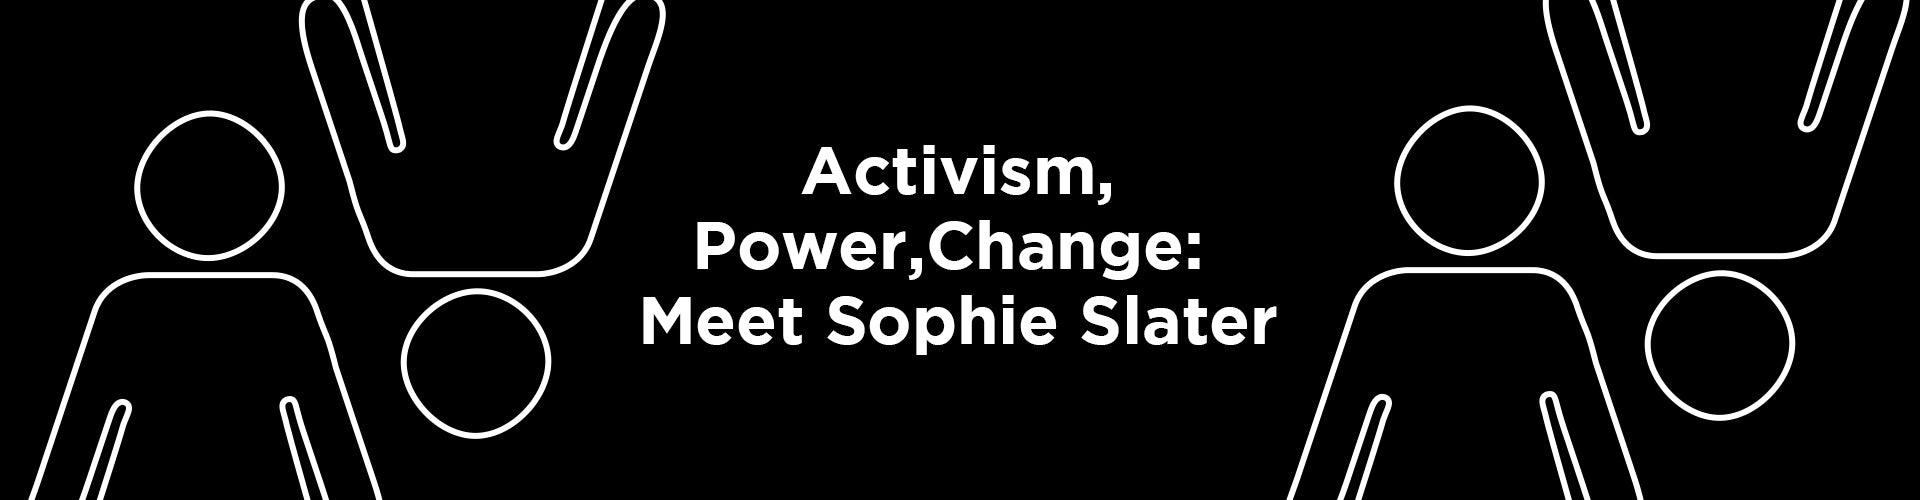 Activism, Power, and Change: Meet Sophie Slater